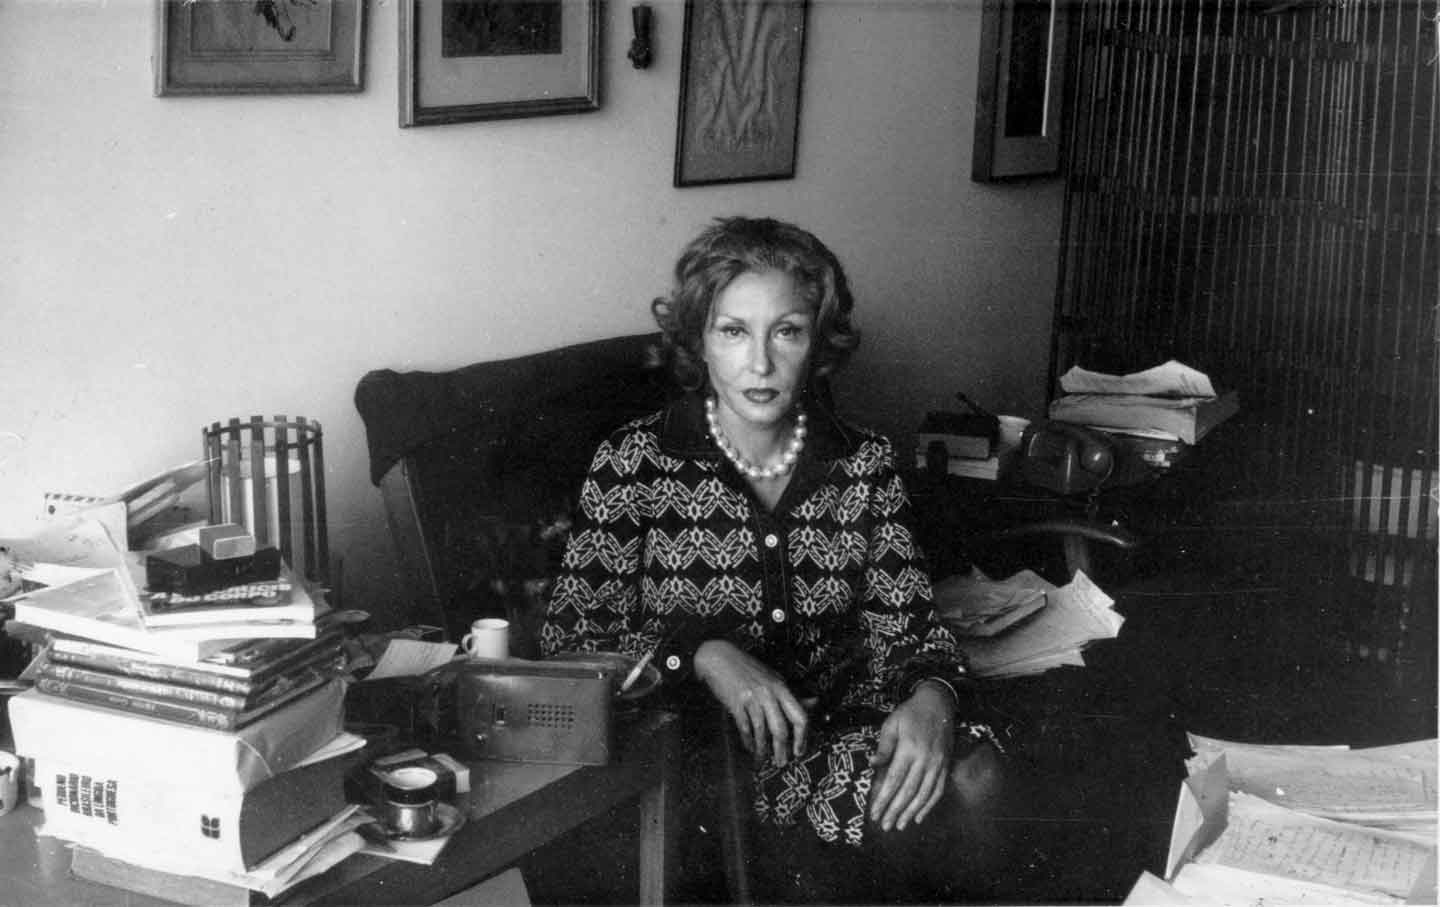 Clarice Lispector at home in Rio de Janeiro in the 1970s.